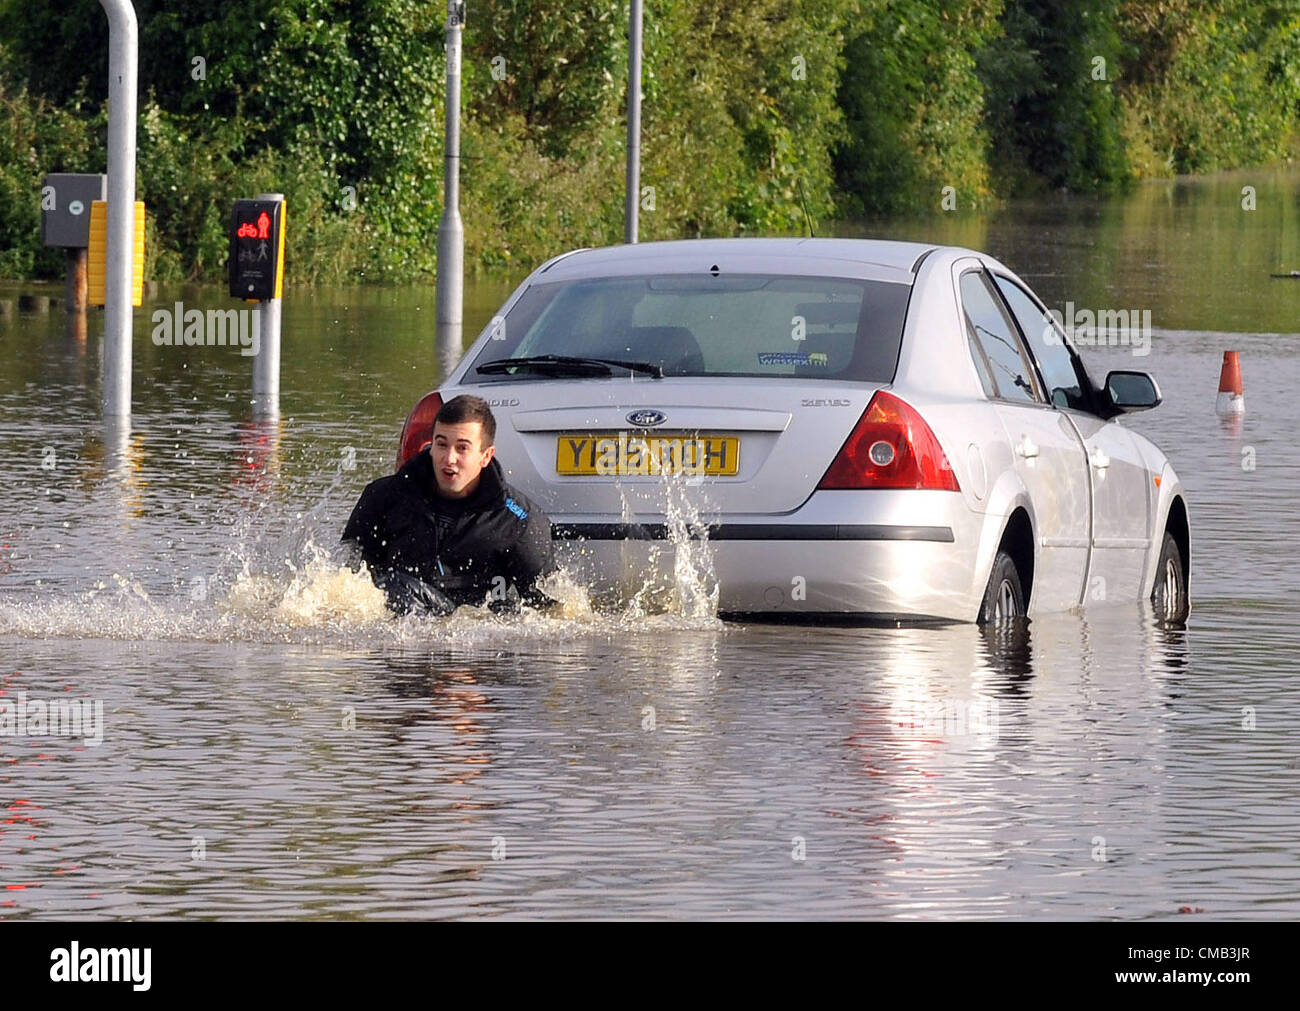 Dorset, UK. 8th July 2012. One young driver got caught out by the floods in the town centre at Weymouth. - Stock Image